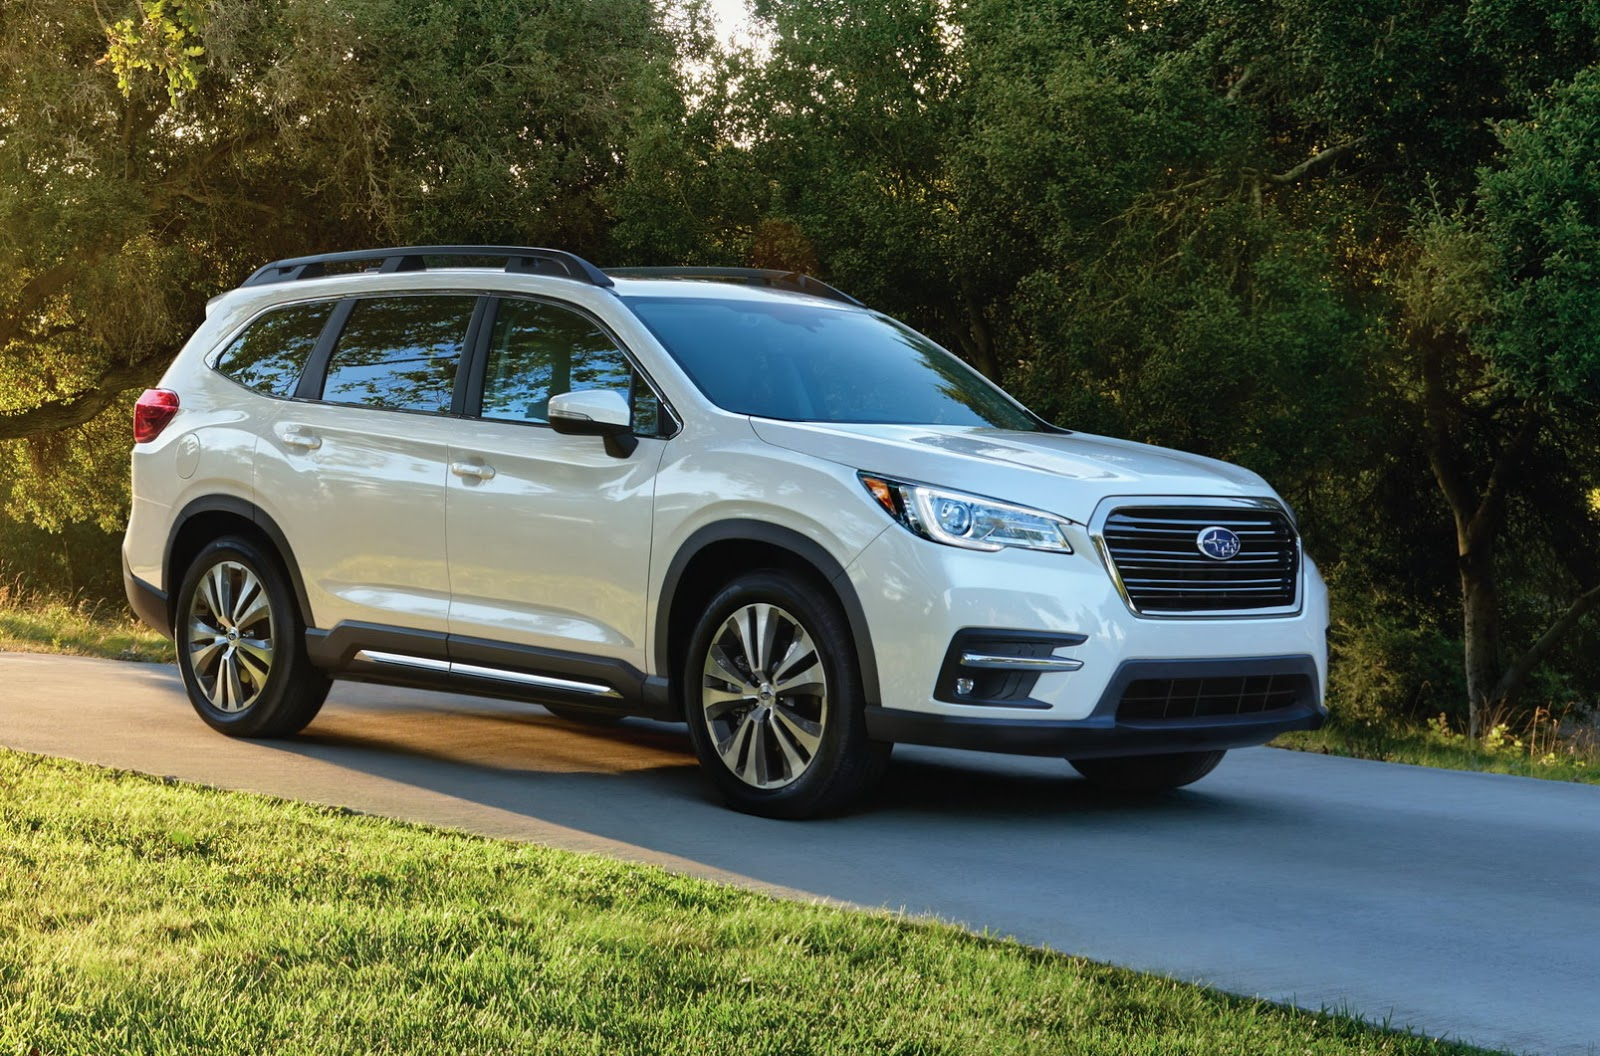 Subaru Outback Vs Forester >> 2019 Subaru Ascent Production Will Create New Jobs At Indiana Plant - autoevolution